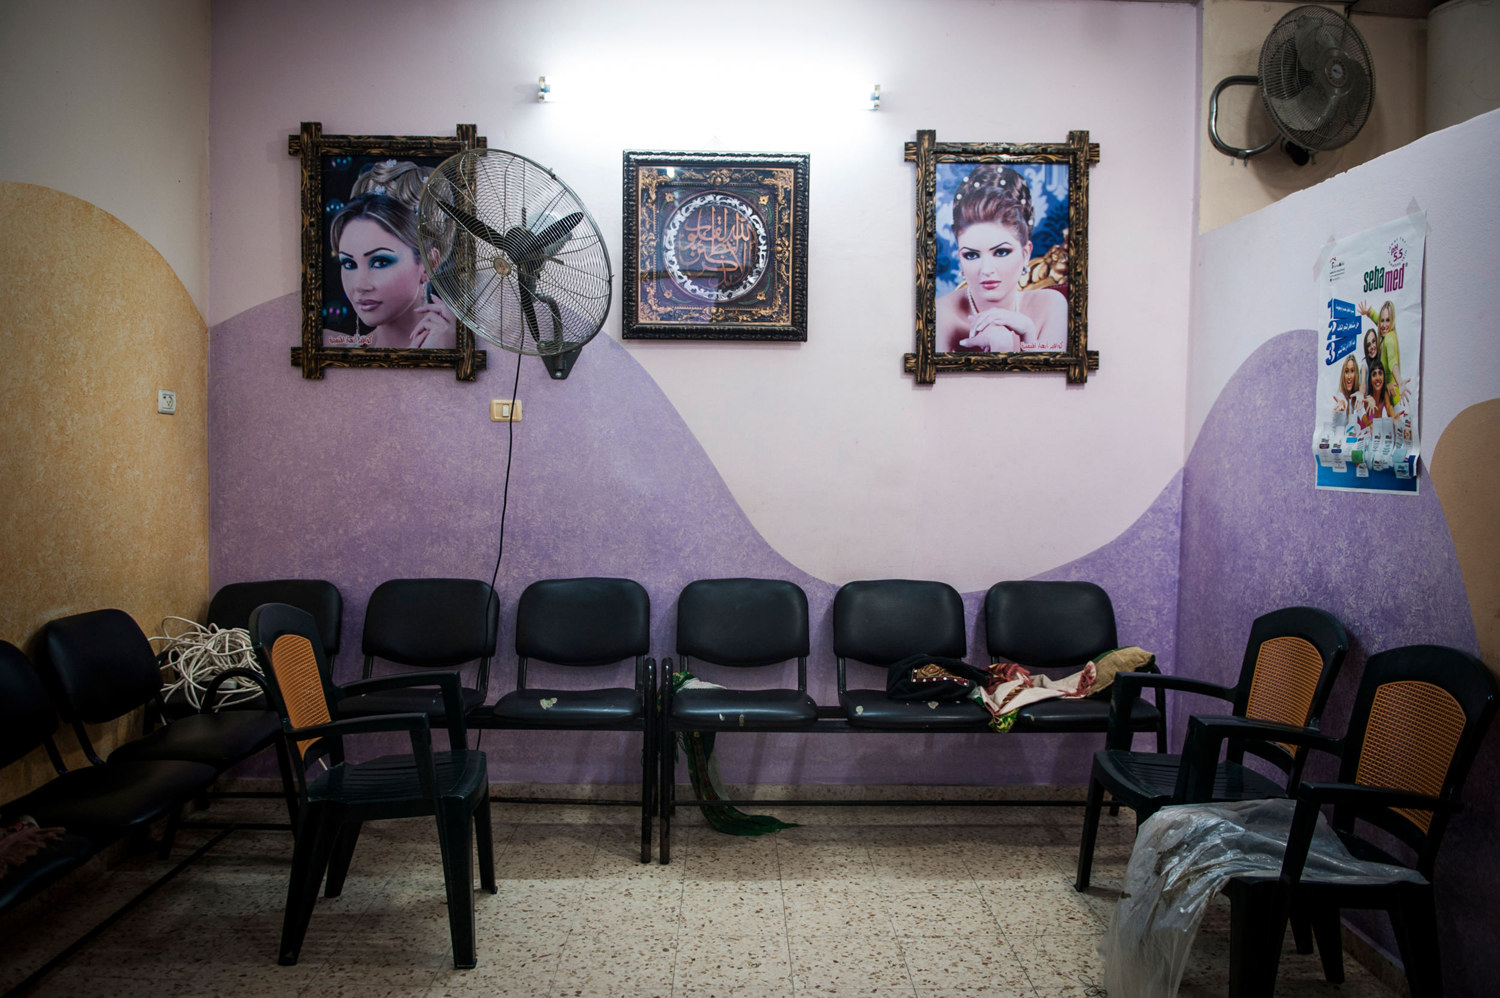 At a salon in Gaza City women come to get their hair, nails, and makeup done before weddings. In many families, a woman is not allowed to be seen without a veil by a man outside of her family, so beauty salons are for women only.